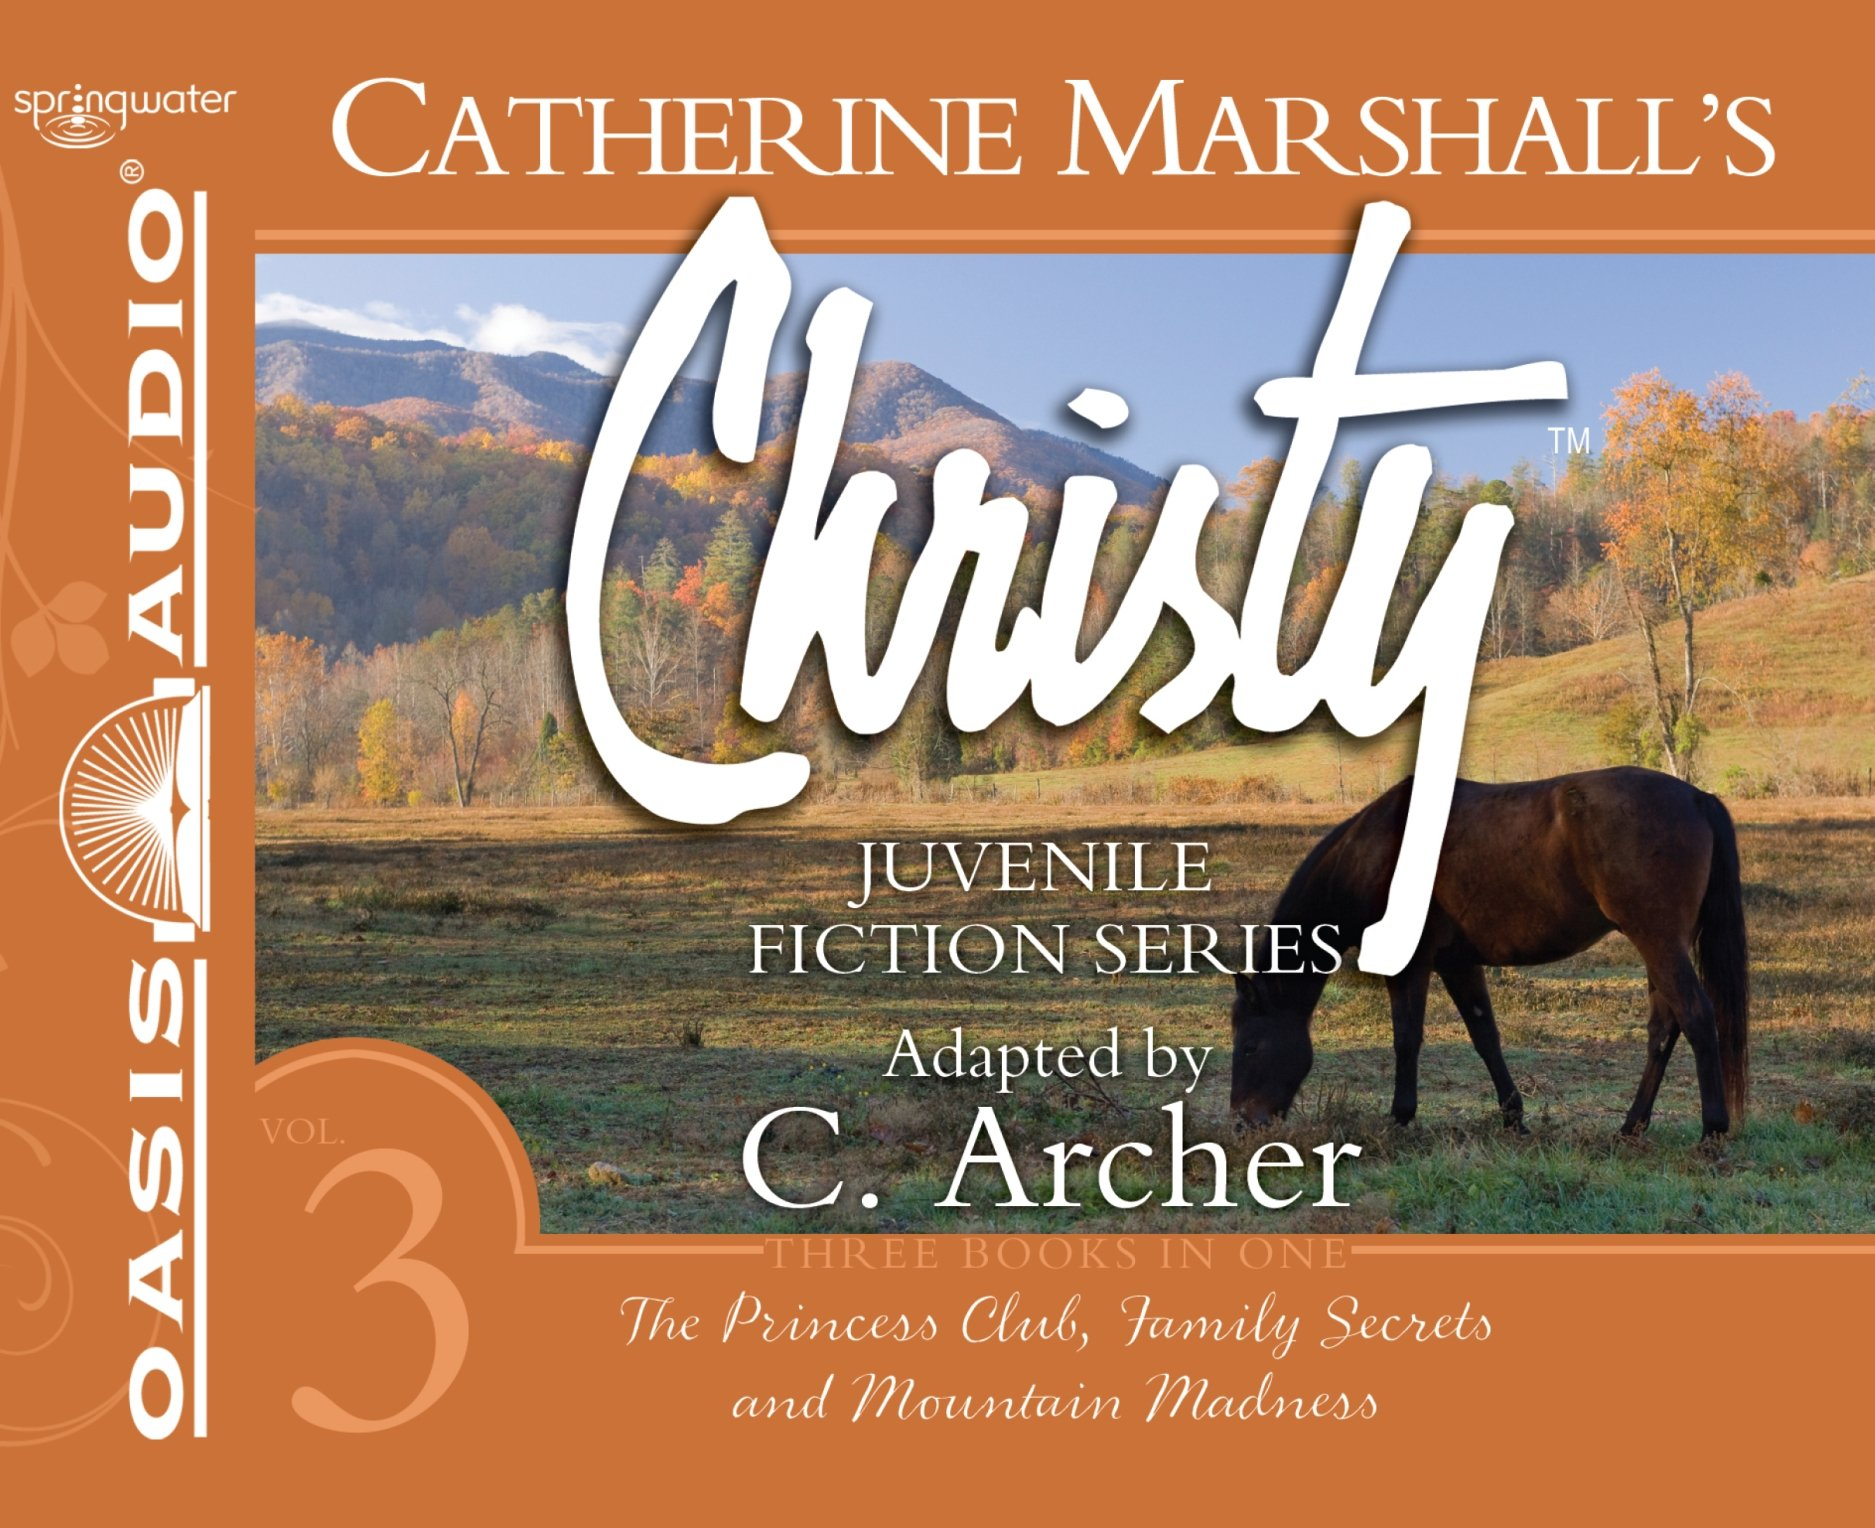 Read Online Christy Collection Books 7-9: The Princess Club, Family Secrets, Mountain Madness (Catherine Marshall's Christy Series) ebook